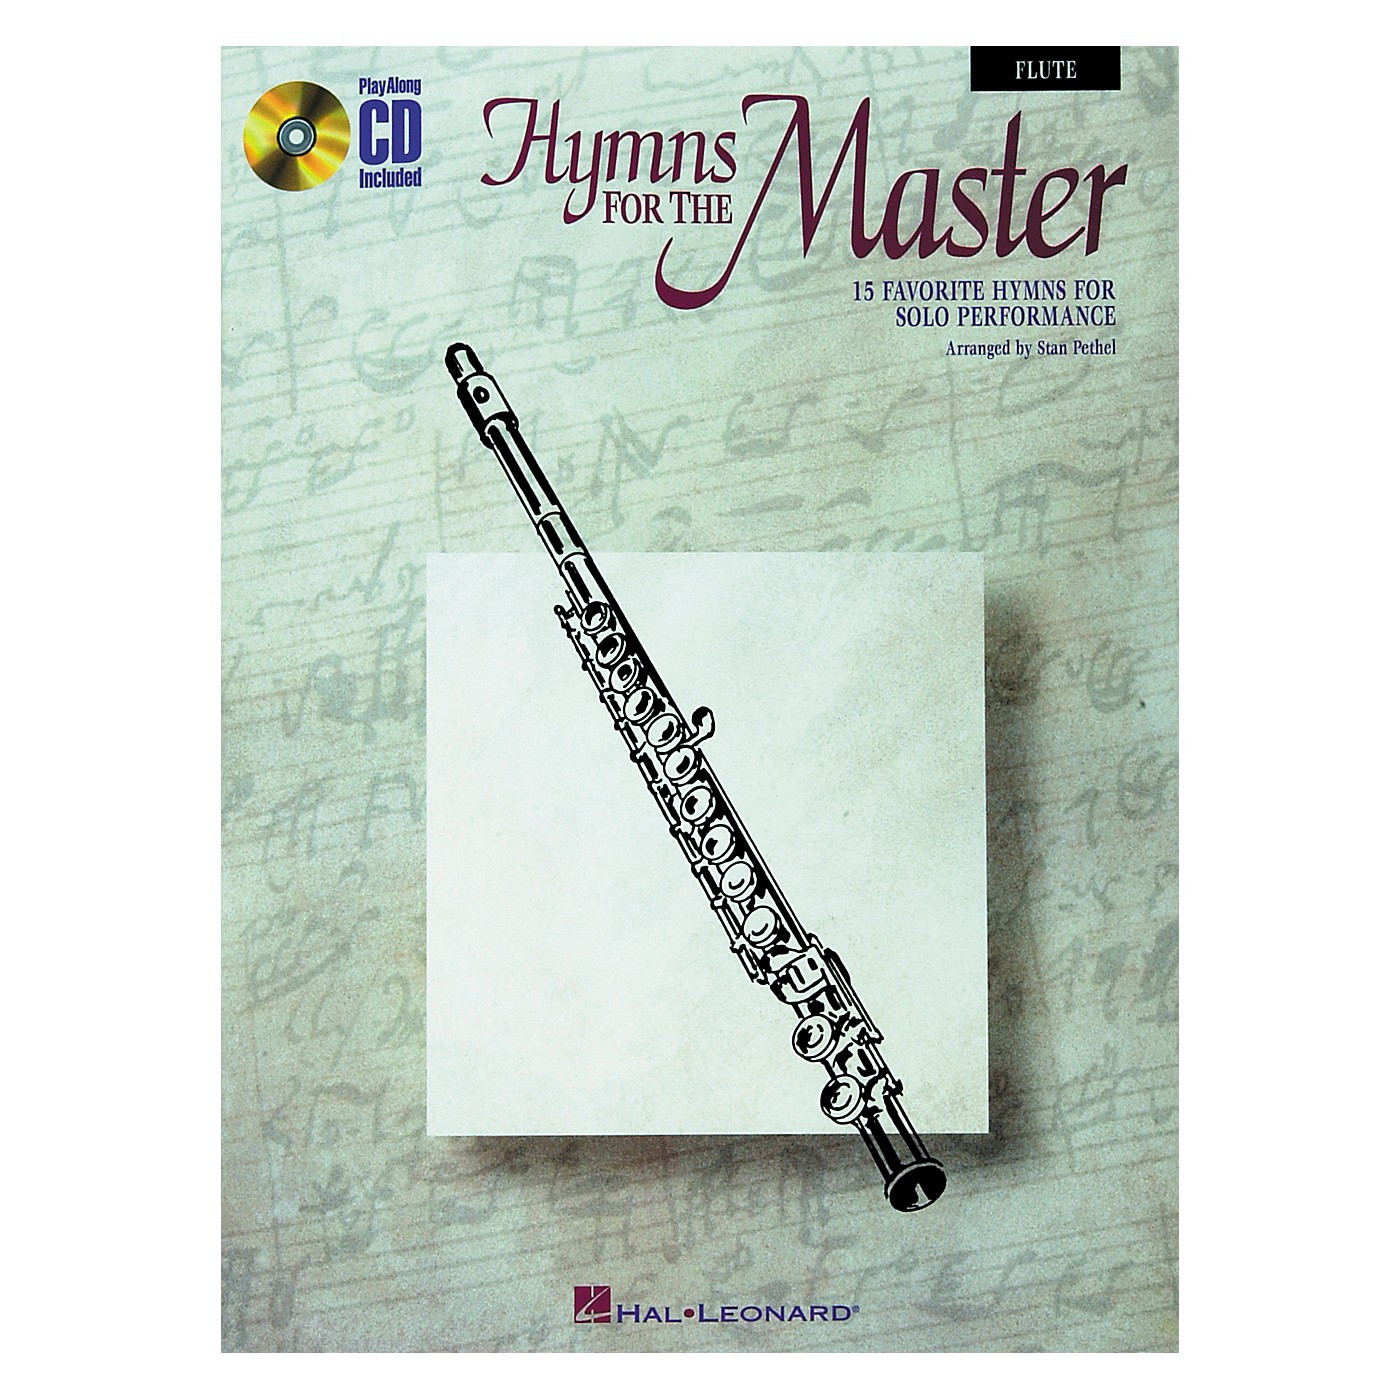 Hal Leonard Play Along Hymns for The Master (Book/CD) thumbnail